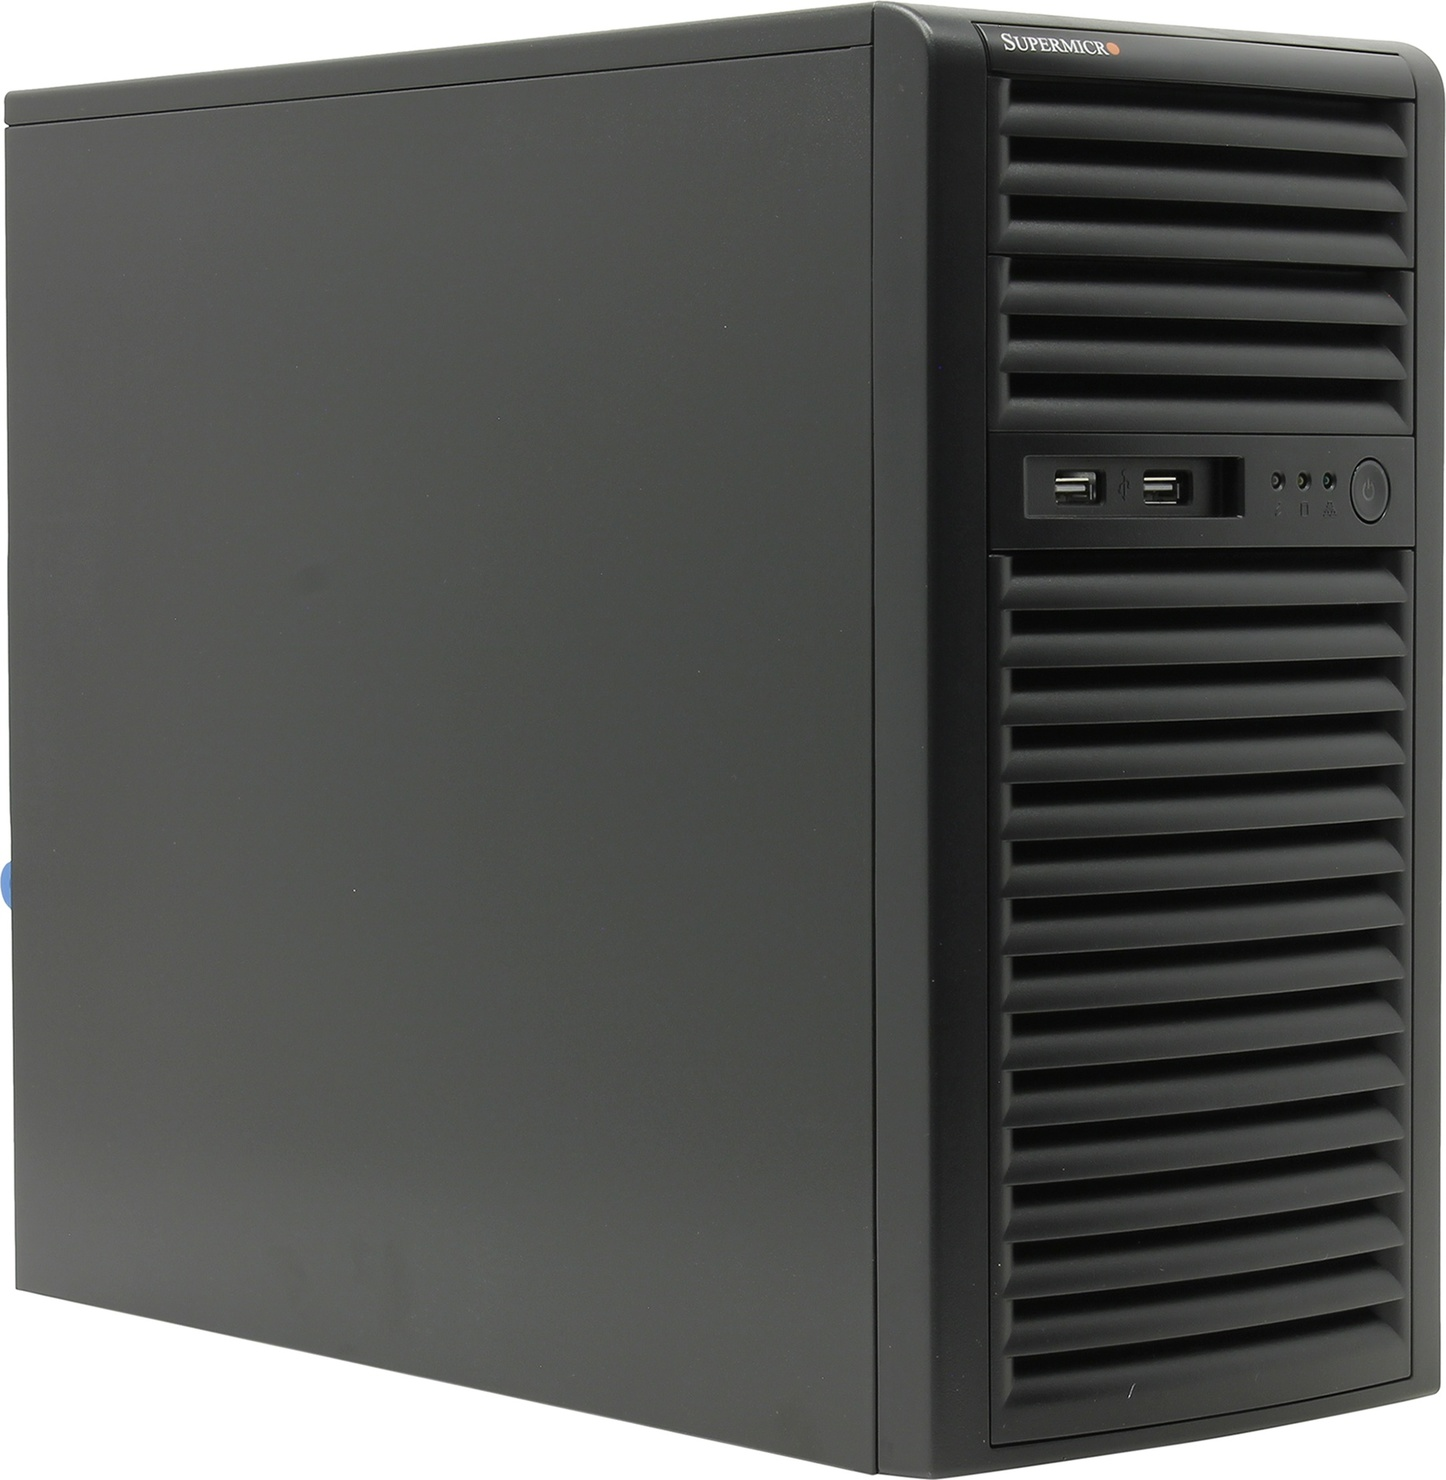 SERVER Tower 0110 0671640 1xE3-1220v6/1x8gb/2x1tb/1x300w/Windows Server 2019 Standard server 400